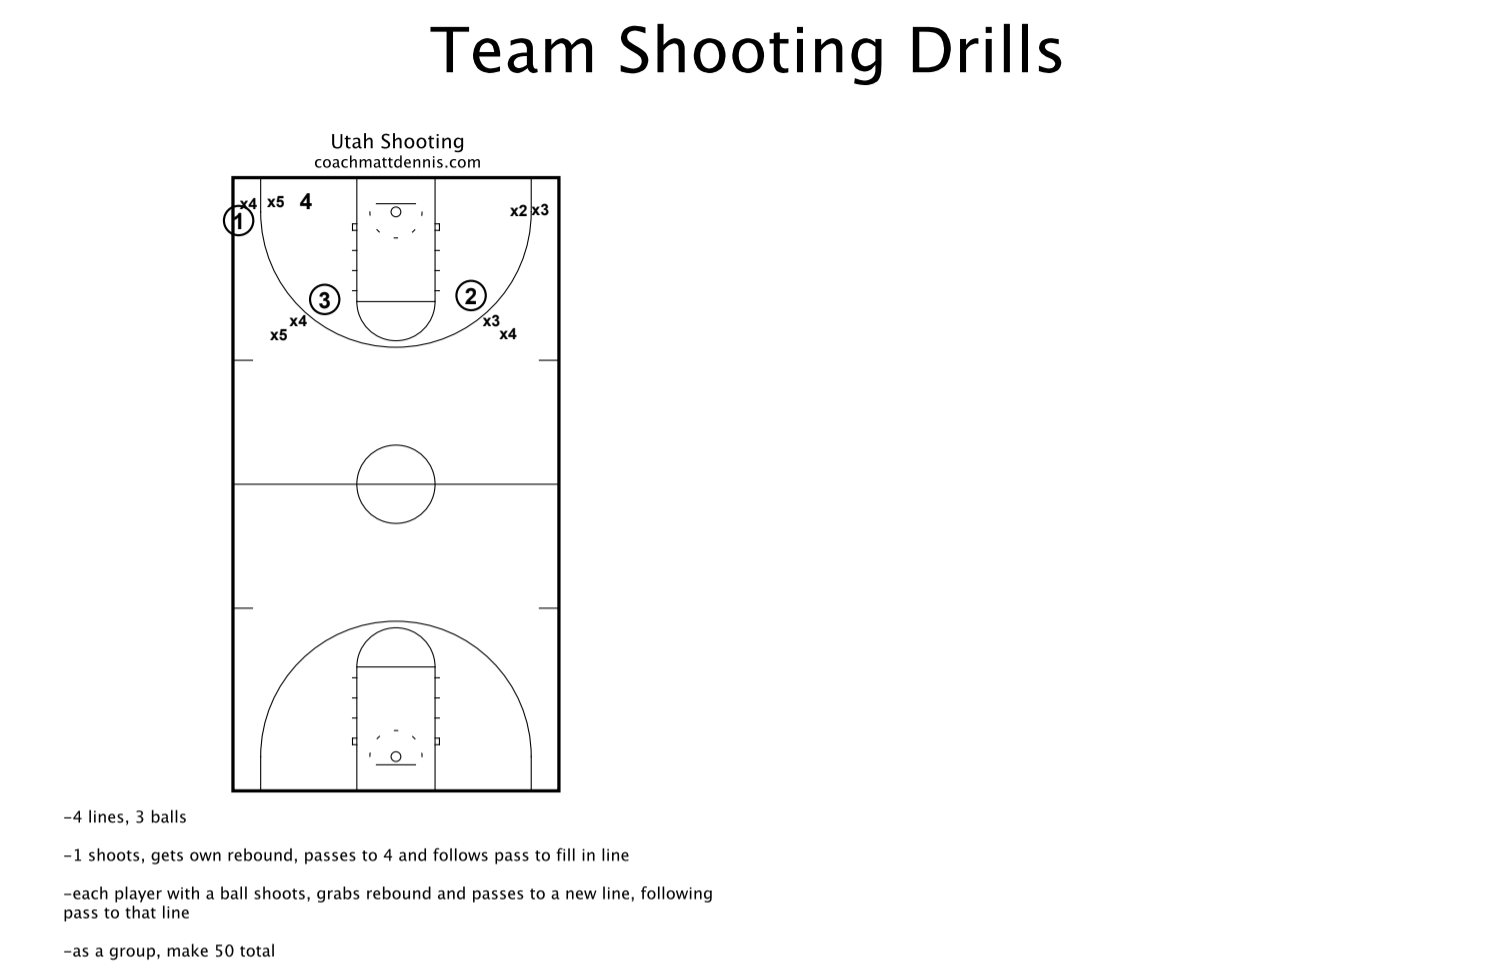 Team Shooting Practice Drill